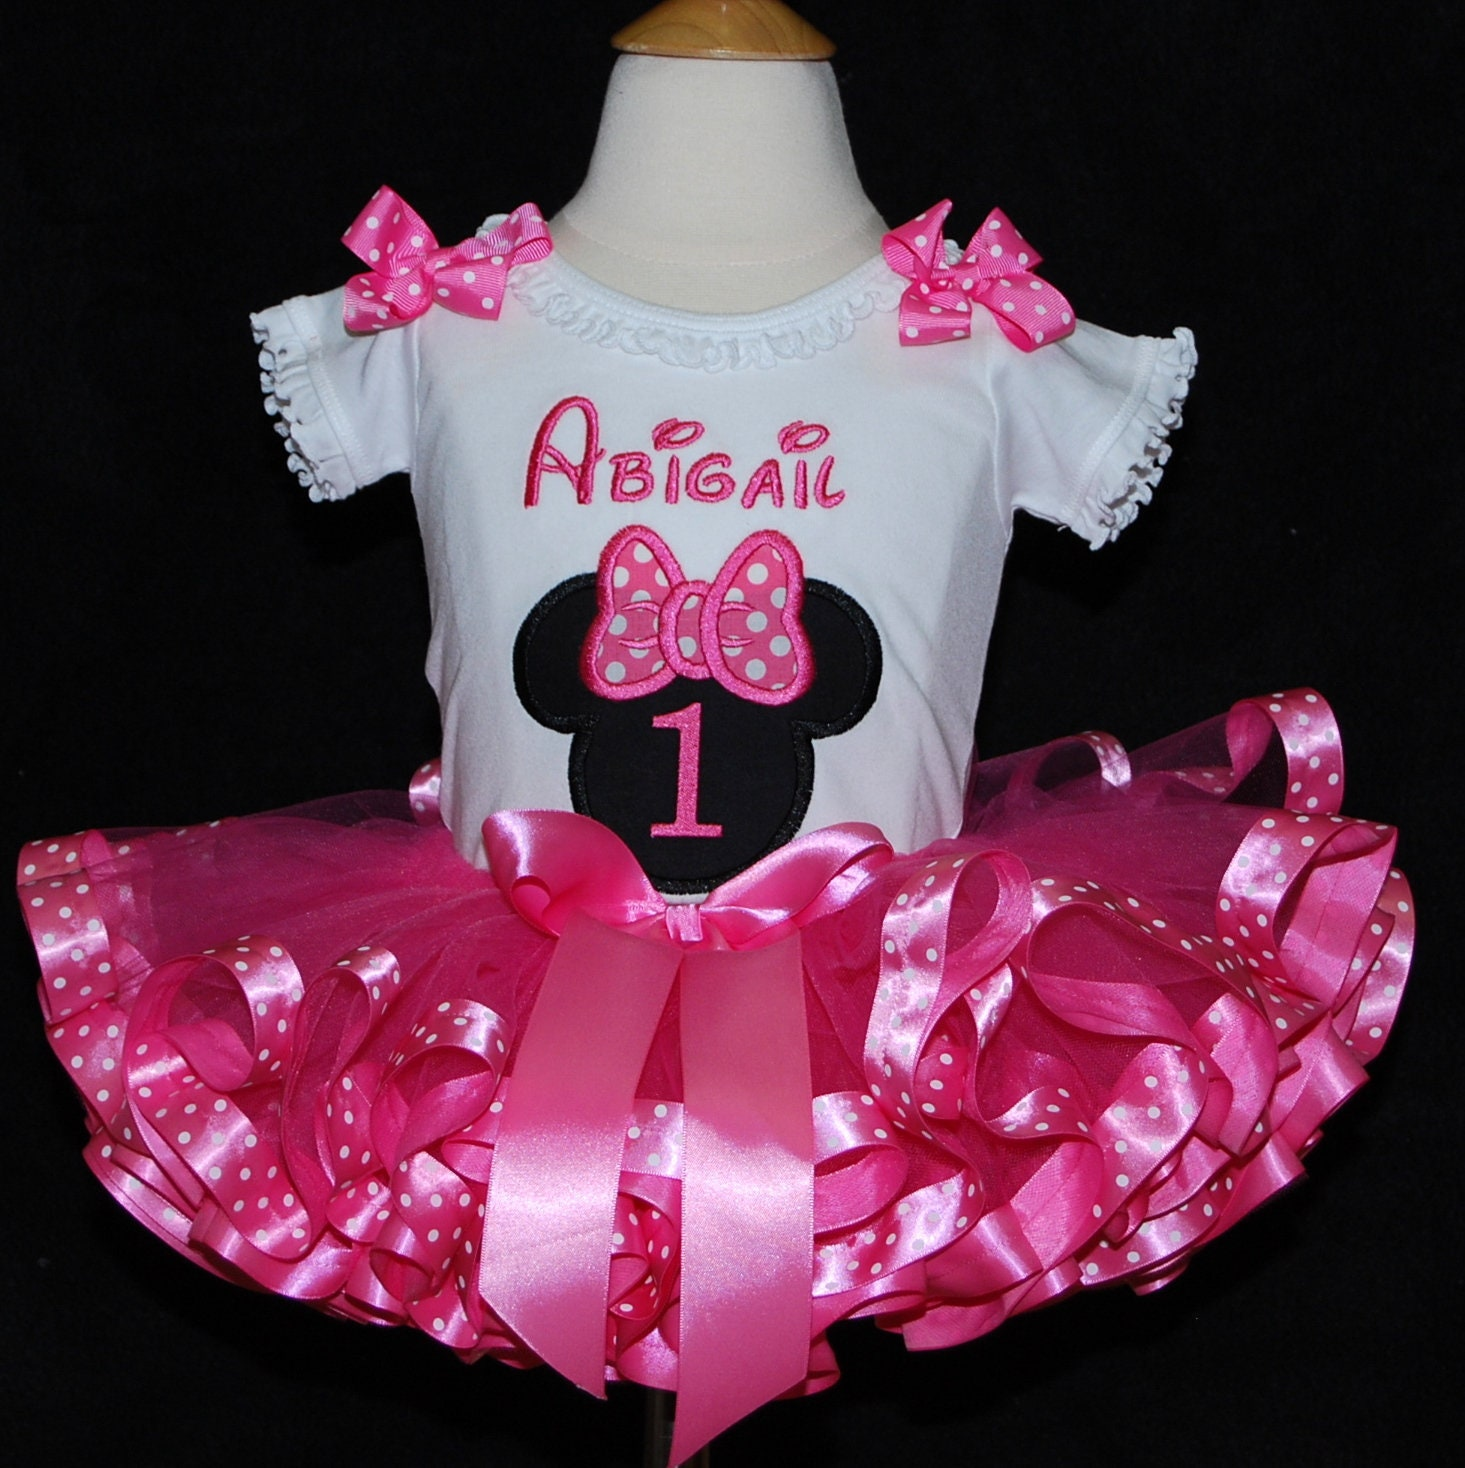 minnie mouse birthday outfit birthday tutu outfit personalized minnie mouse birthday shirt cake smash outfit minnie mouse tutu dress pink